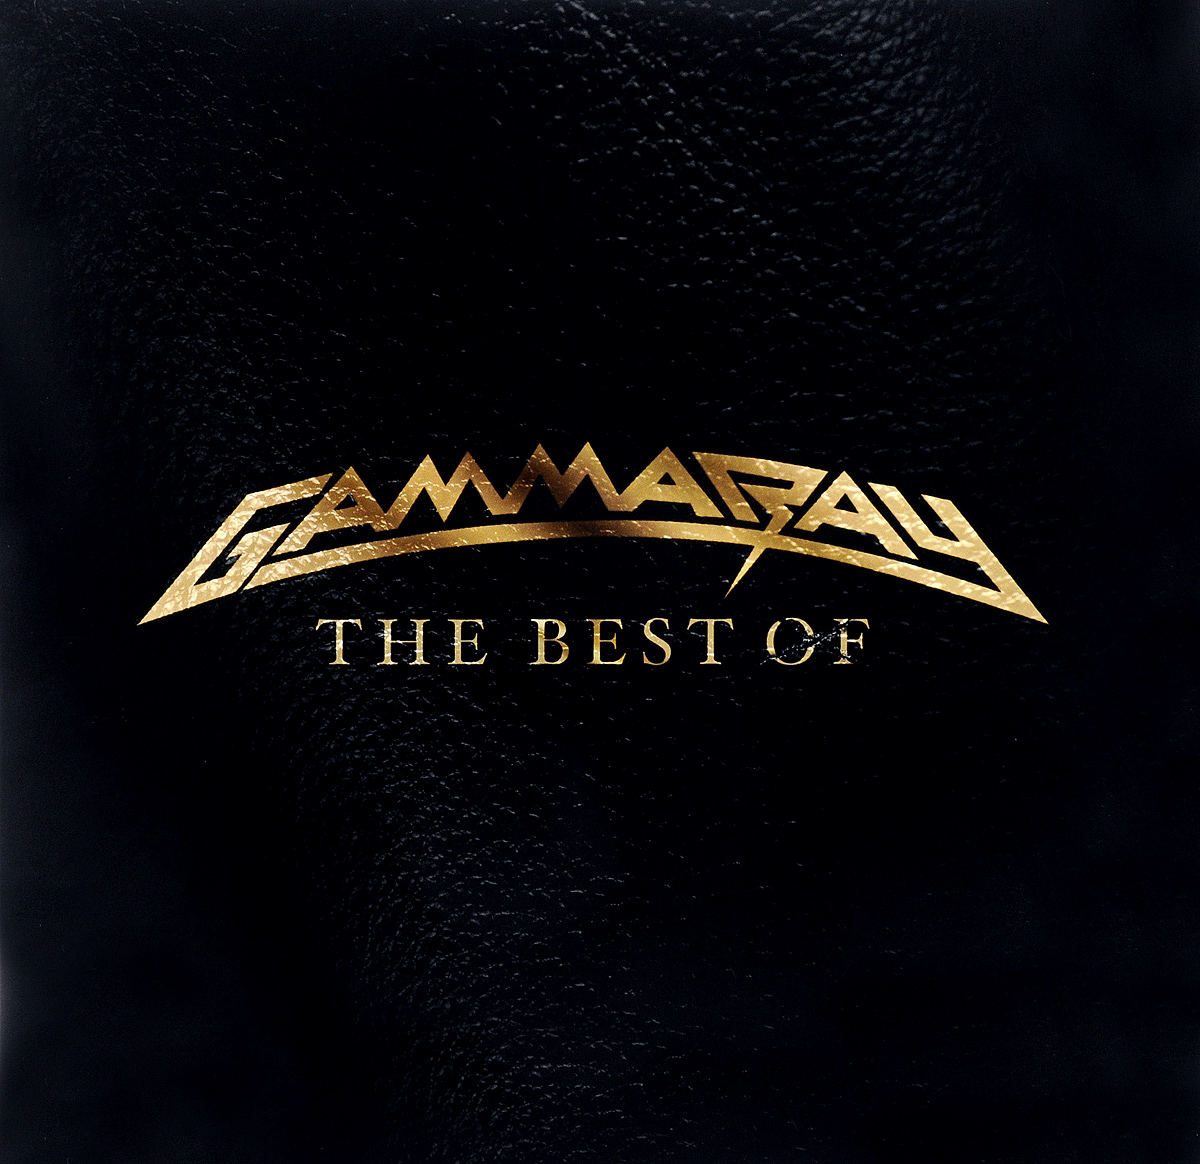 Gamma Ray Gamma Ray. The Best (Of) (4 LP) gamma ray gamma ray the best of gamma ray 2 cd